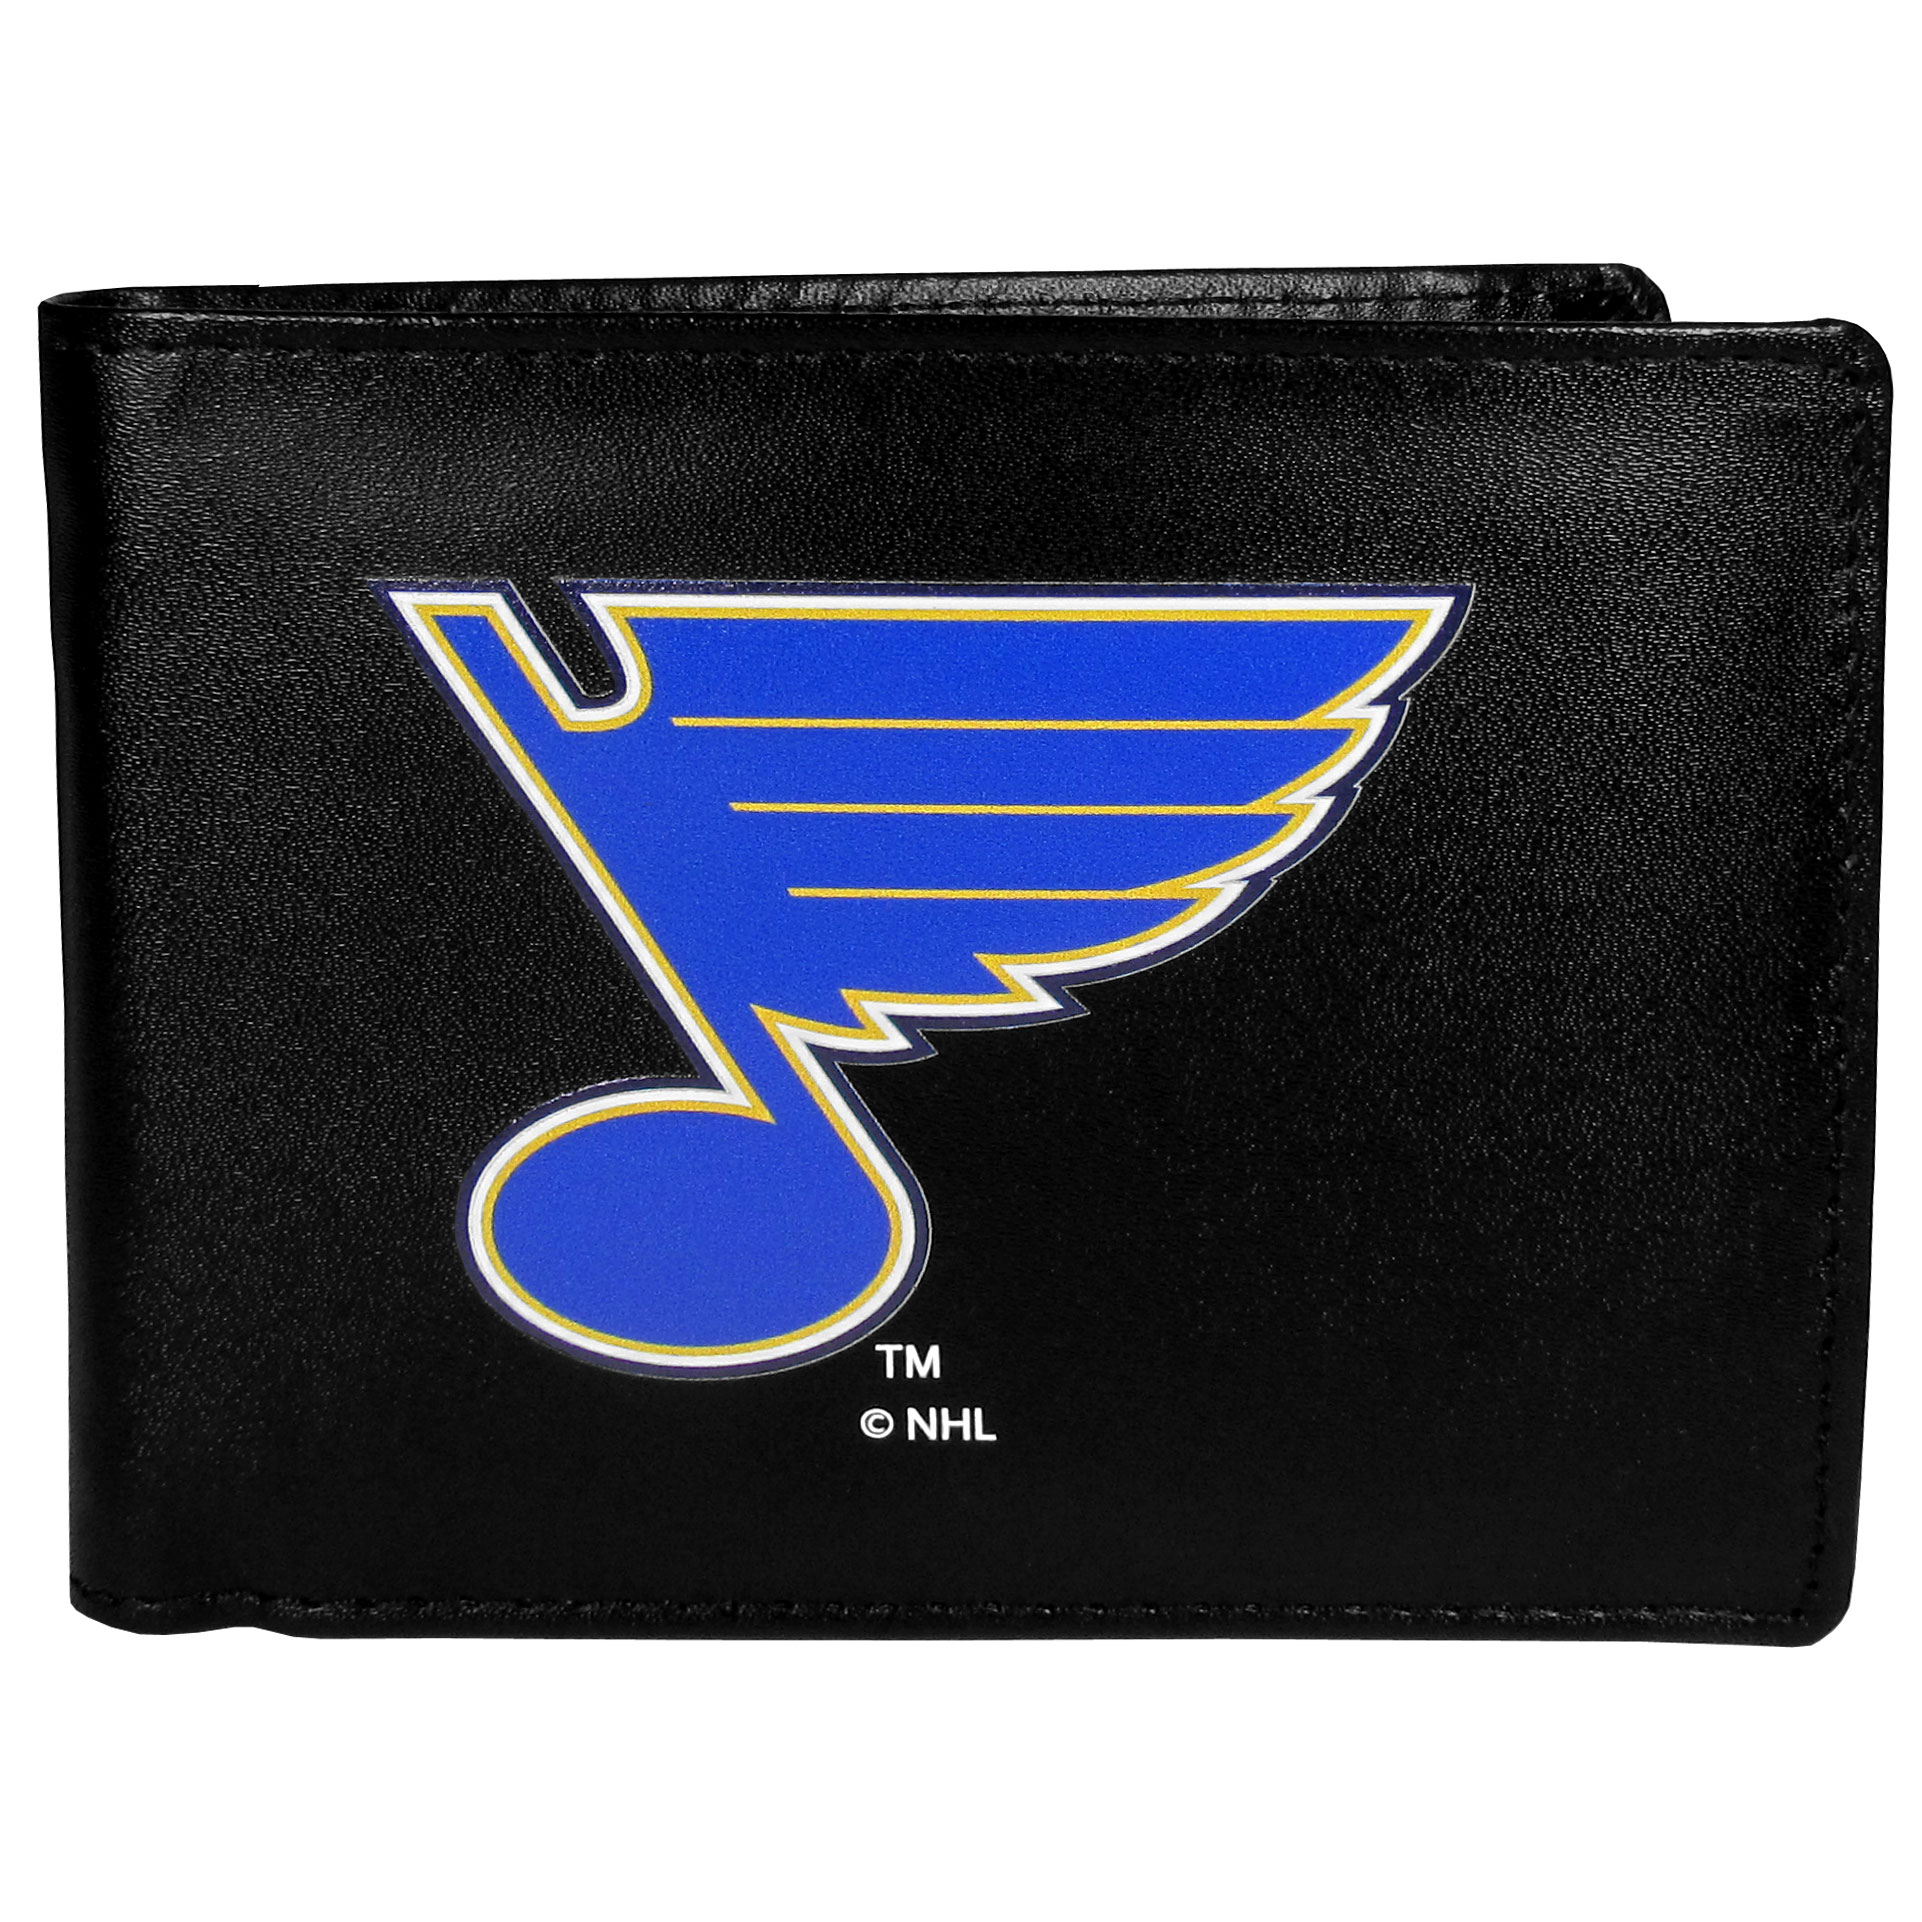 St. Louis Blues® Leather Bi-fold Wallet, Large Logo - Our classic fine leather bi-fold wallet is meticulously crafted with genuine leather that will age beautifully so you will have a quality wallet for years to come. The wallet opens to a large, billfold pocket and numerous credit card slots and has a convenient windowed ID slot. The front of the wallet features an extra large St. Louis Blues® printed logo.